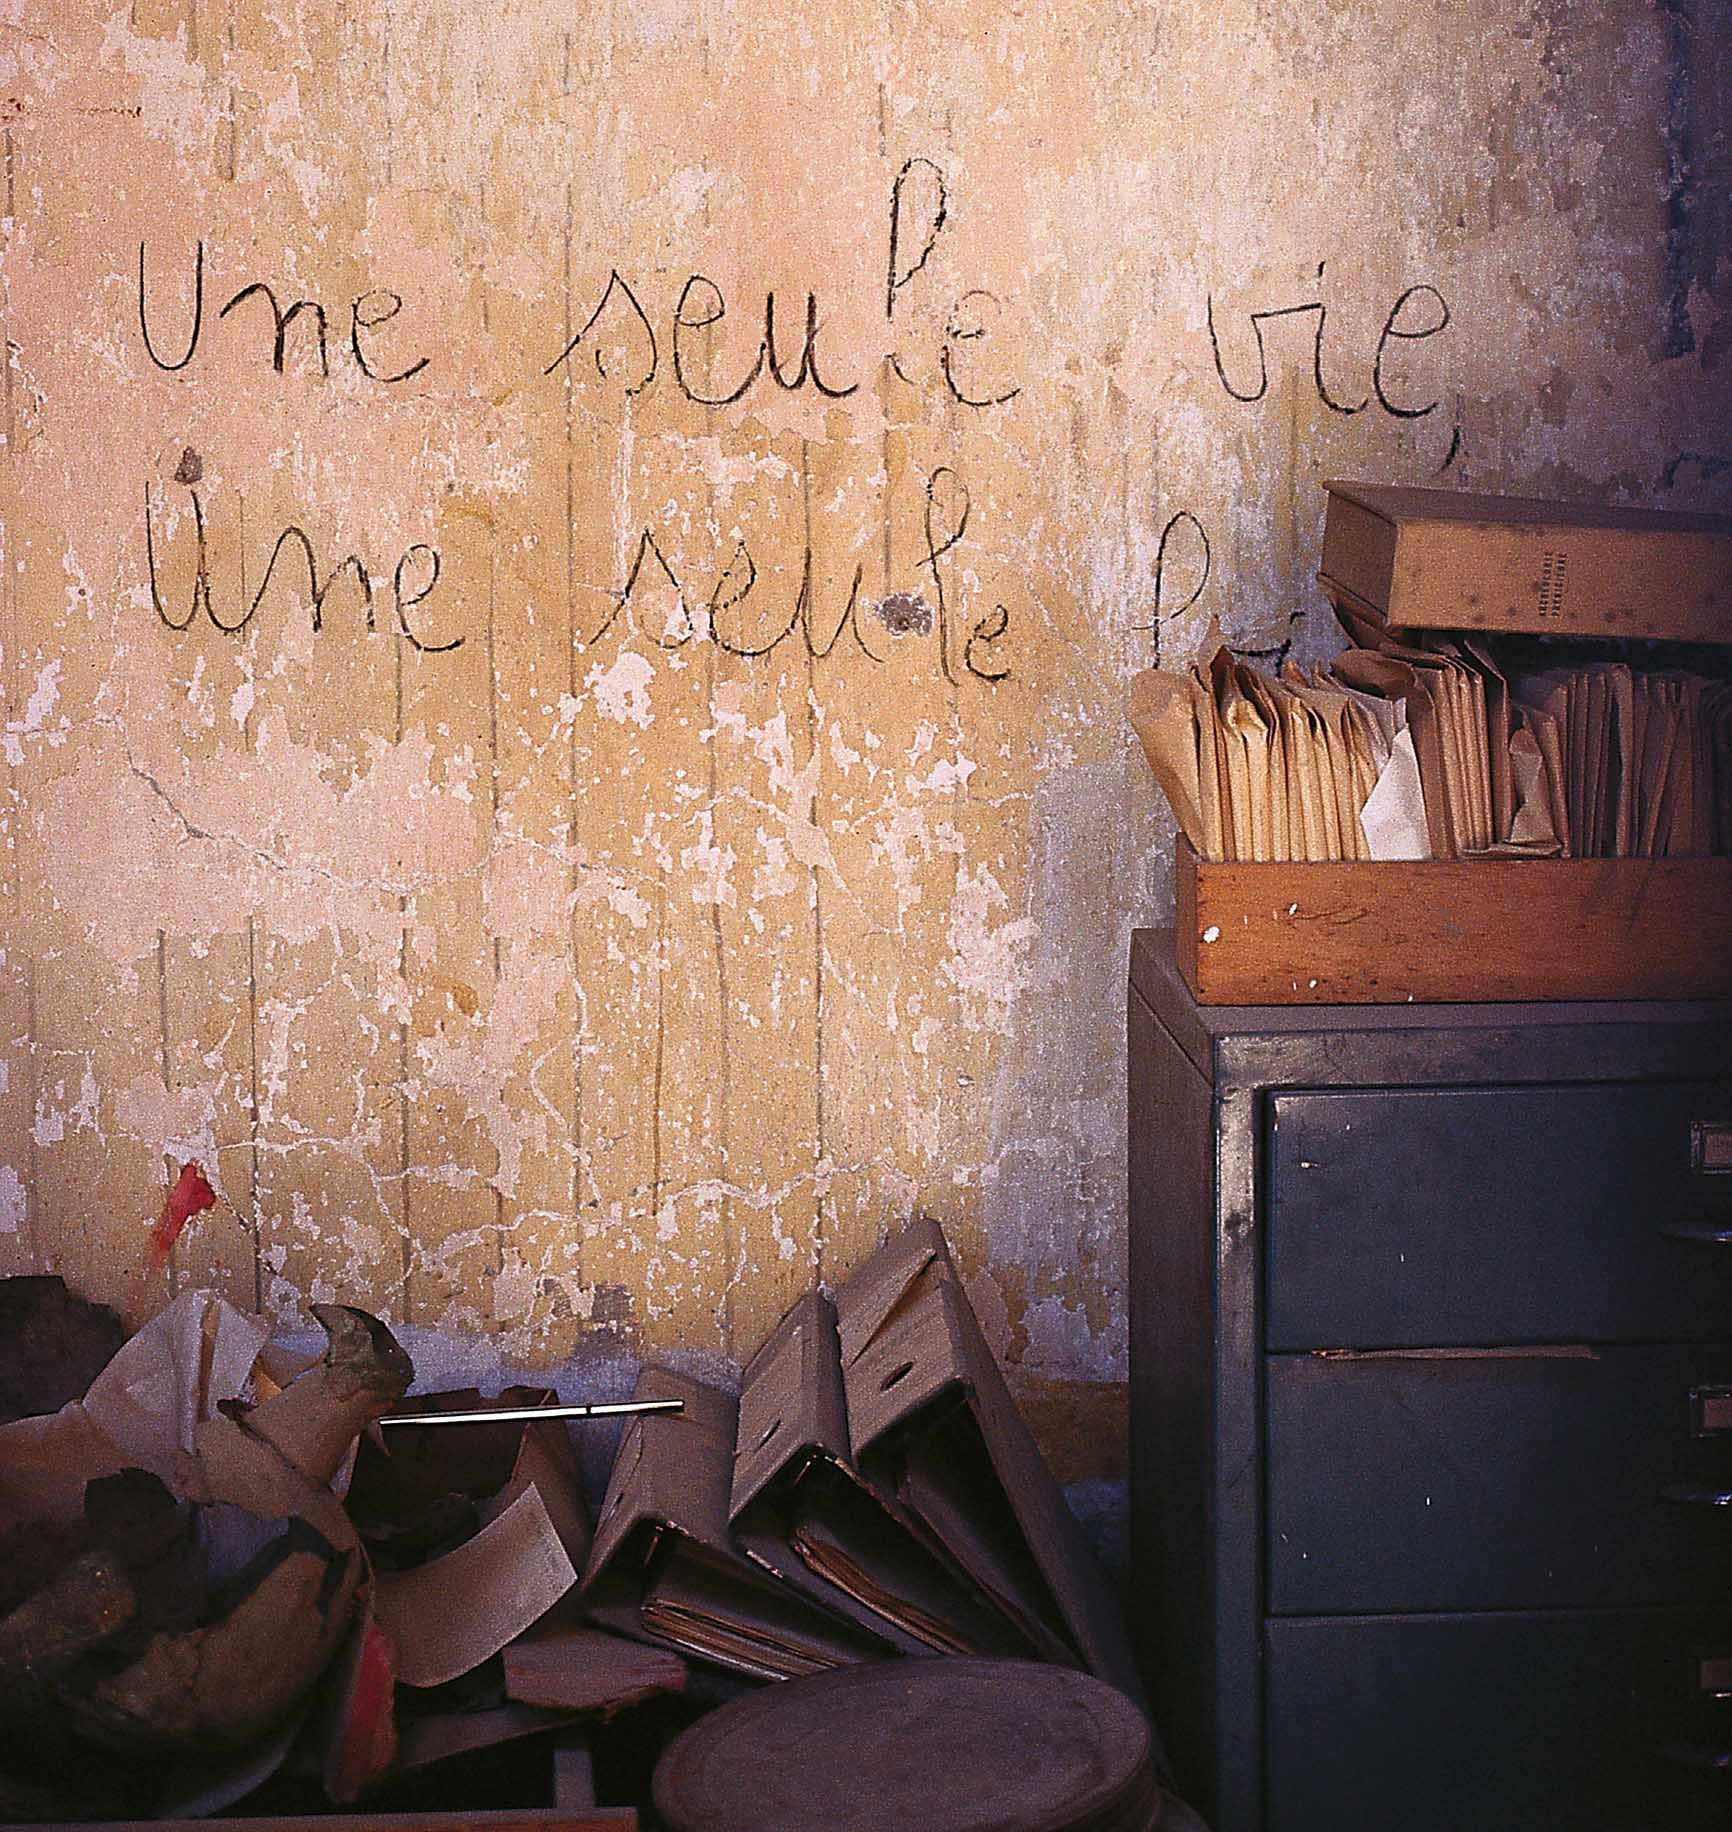 From Beirut 1995: _Une seule vie une seule loi_ – One life, one law. On a wall in the administration at the national museum. The museum was a strategic point and a military control post along the green line. _Photo: OM._